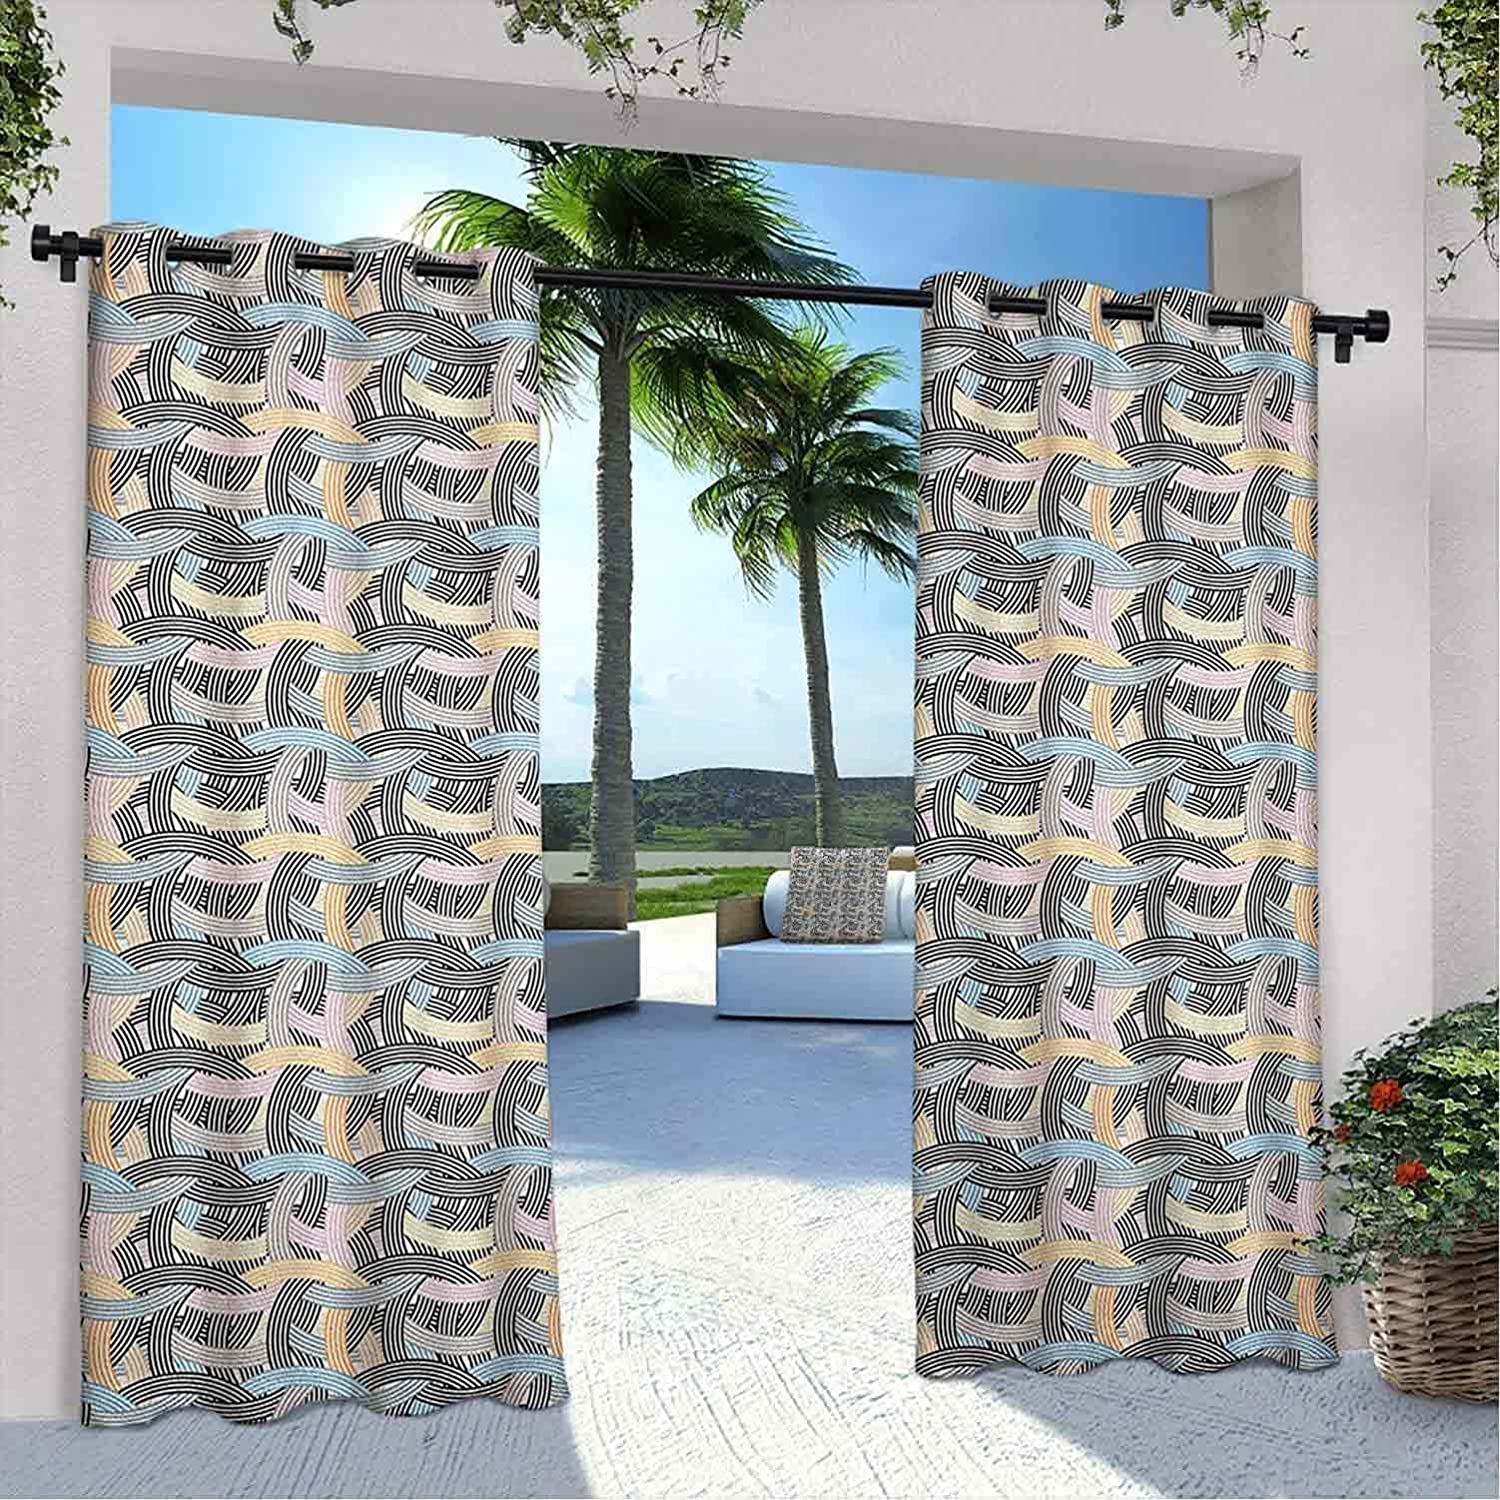 Courtyard Max 76% OFF Outdoor Striped Curtain Arch Shapes Tangled Max 64% OFF Curvy Lin